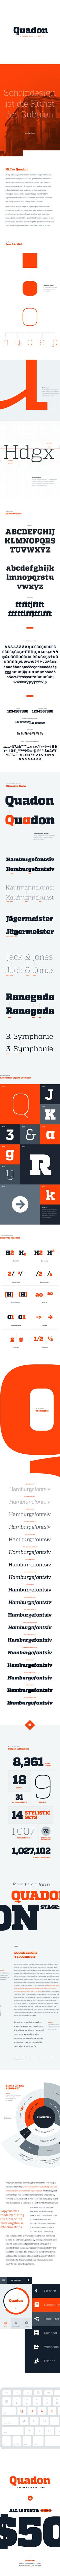 Quadon Typefamily by Rene Bieder, love how this type family is presented #type